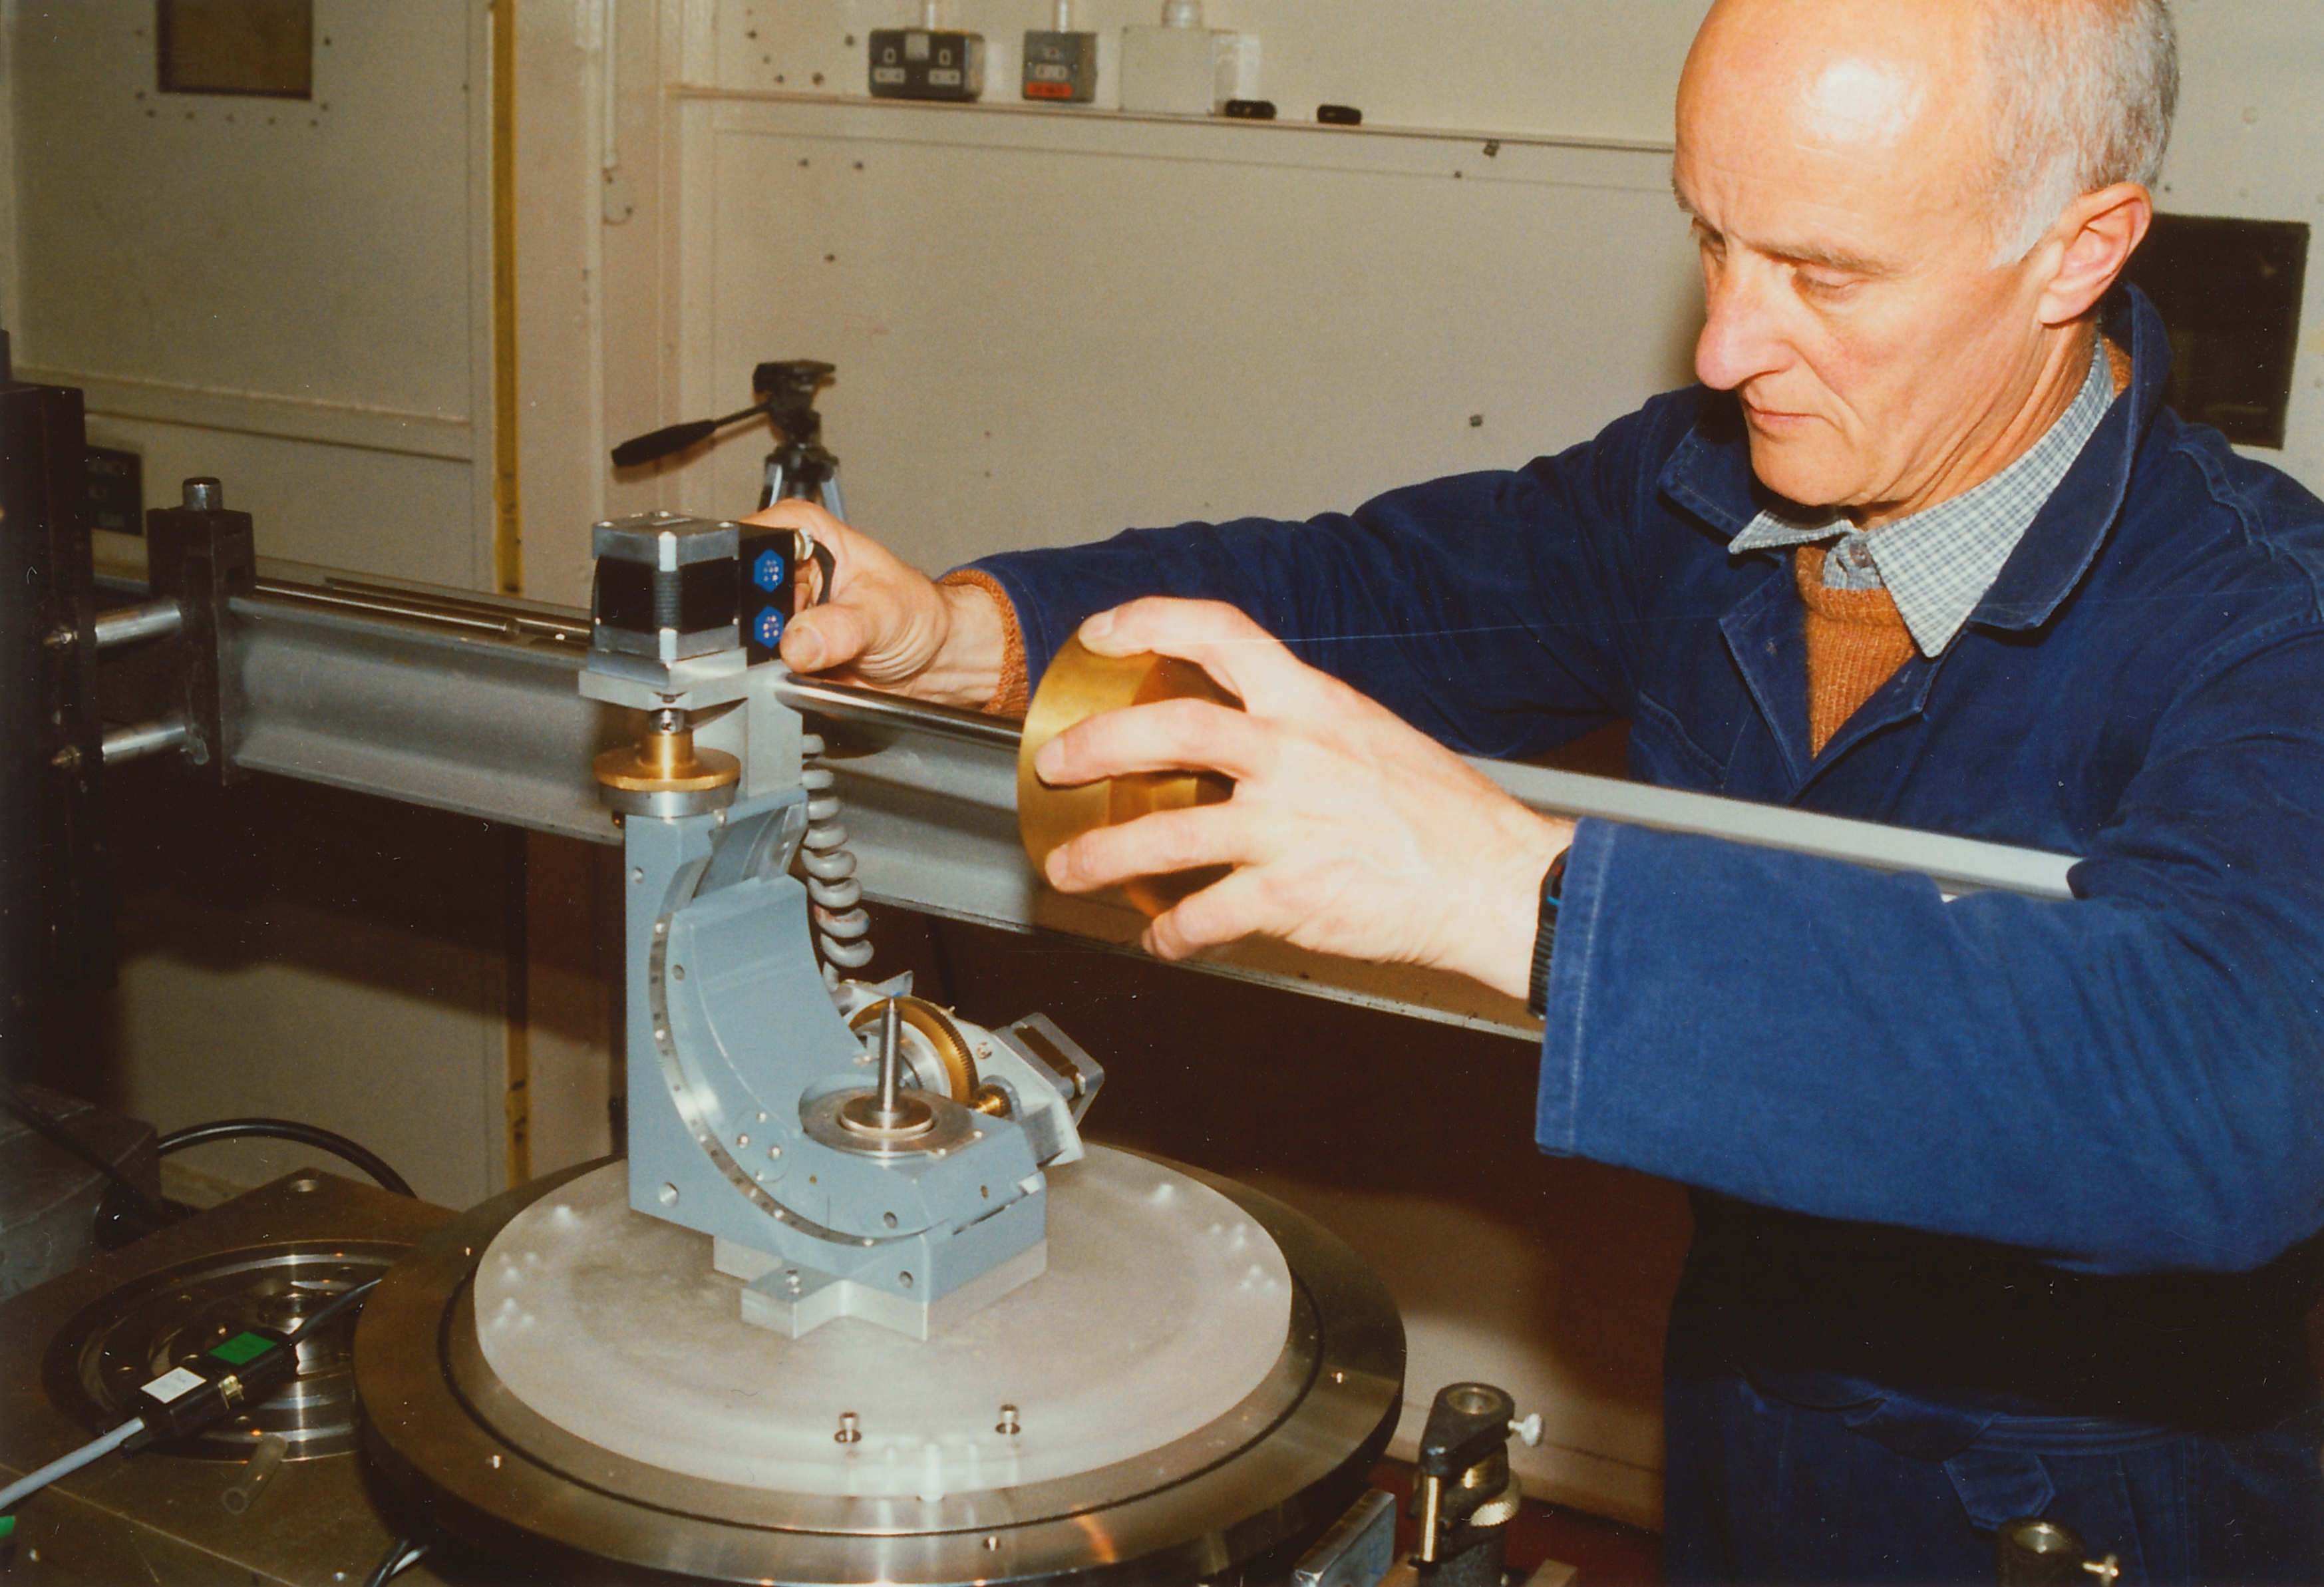 sc0203.jpg - Securing the counterbalance weight to the quarter circle orientor, 1992